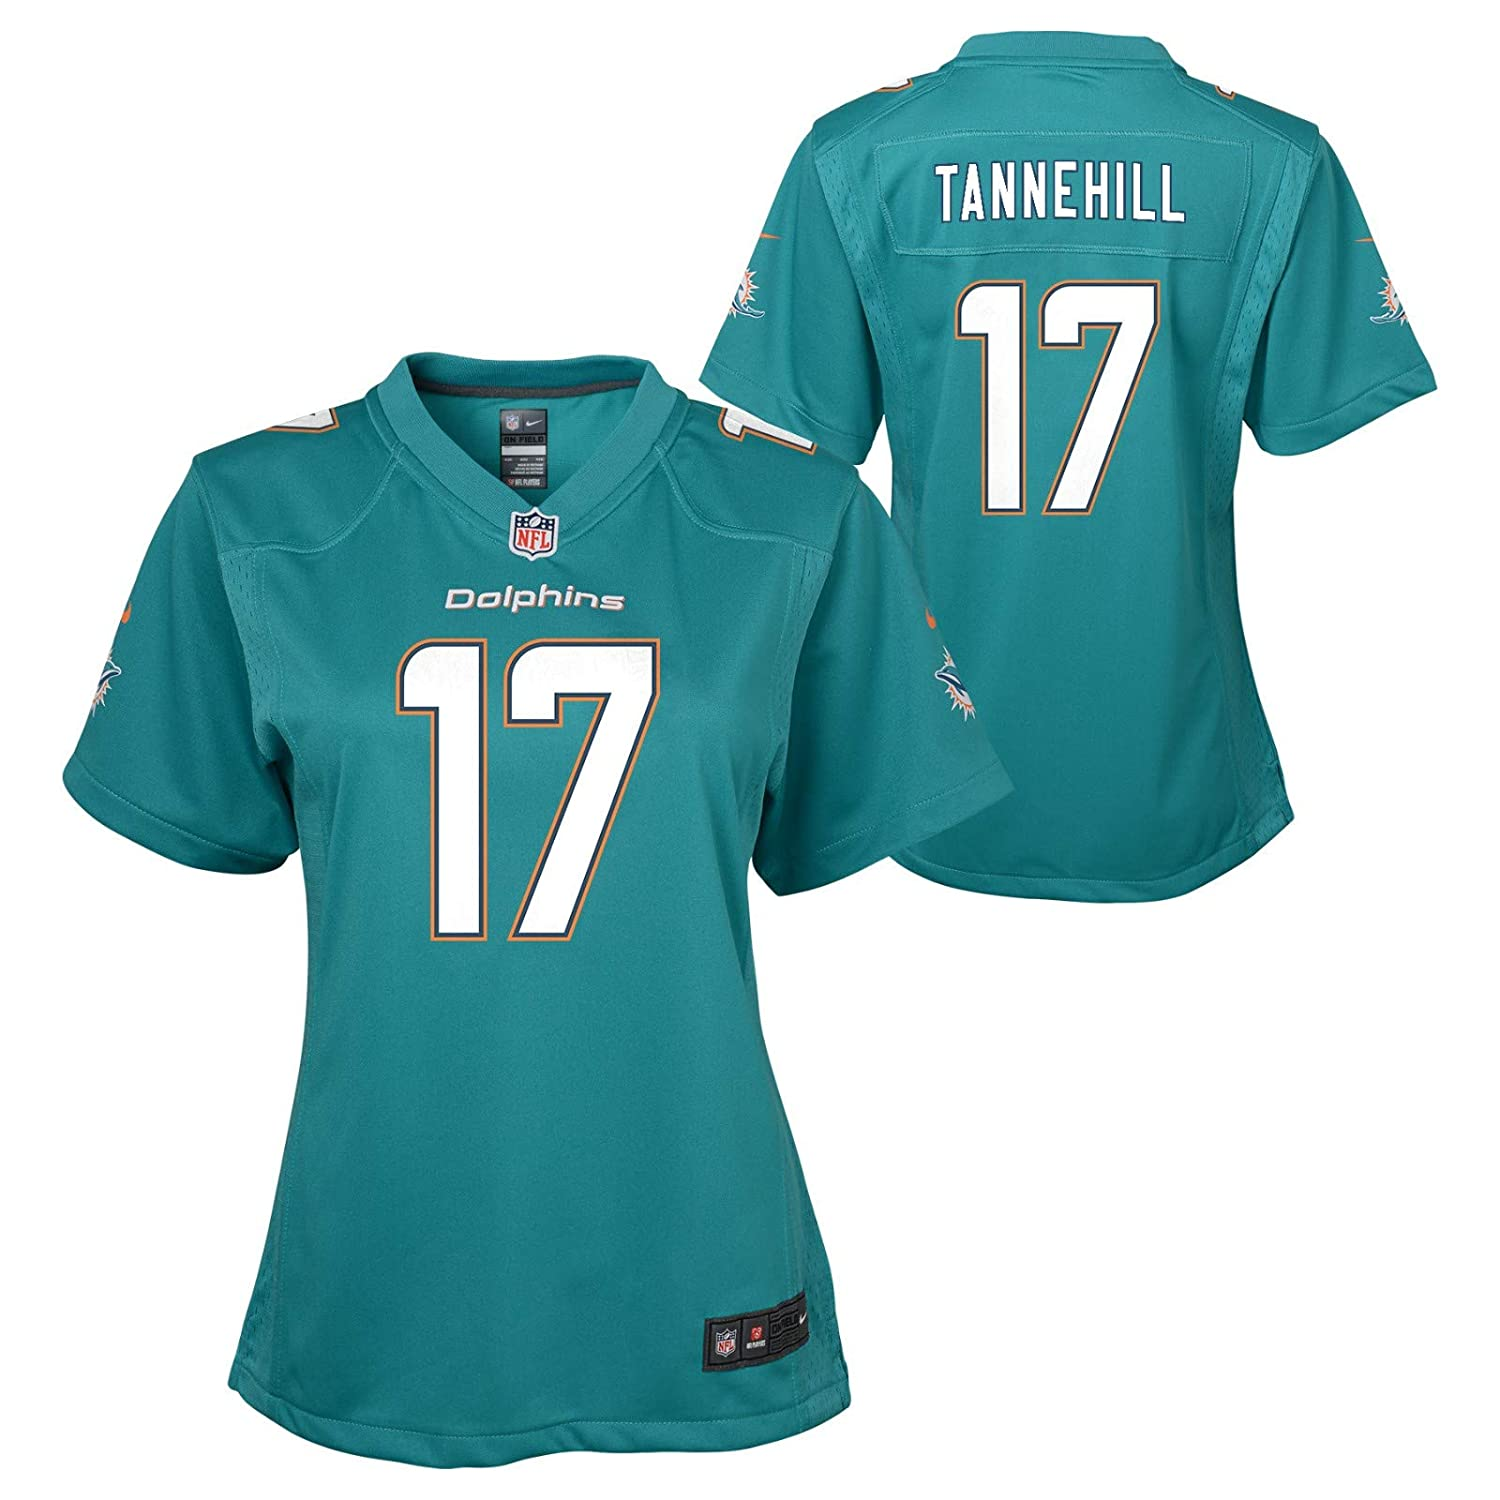 Amazon.com : Outerstuff Ryan Tannehill